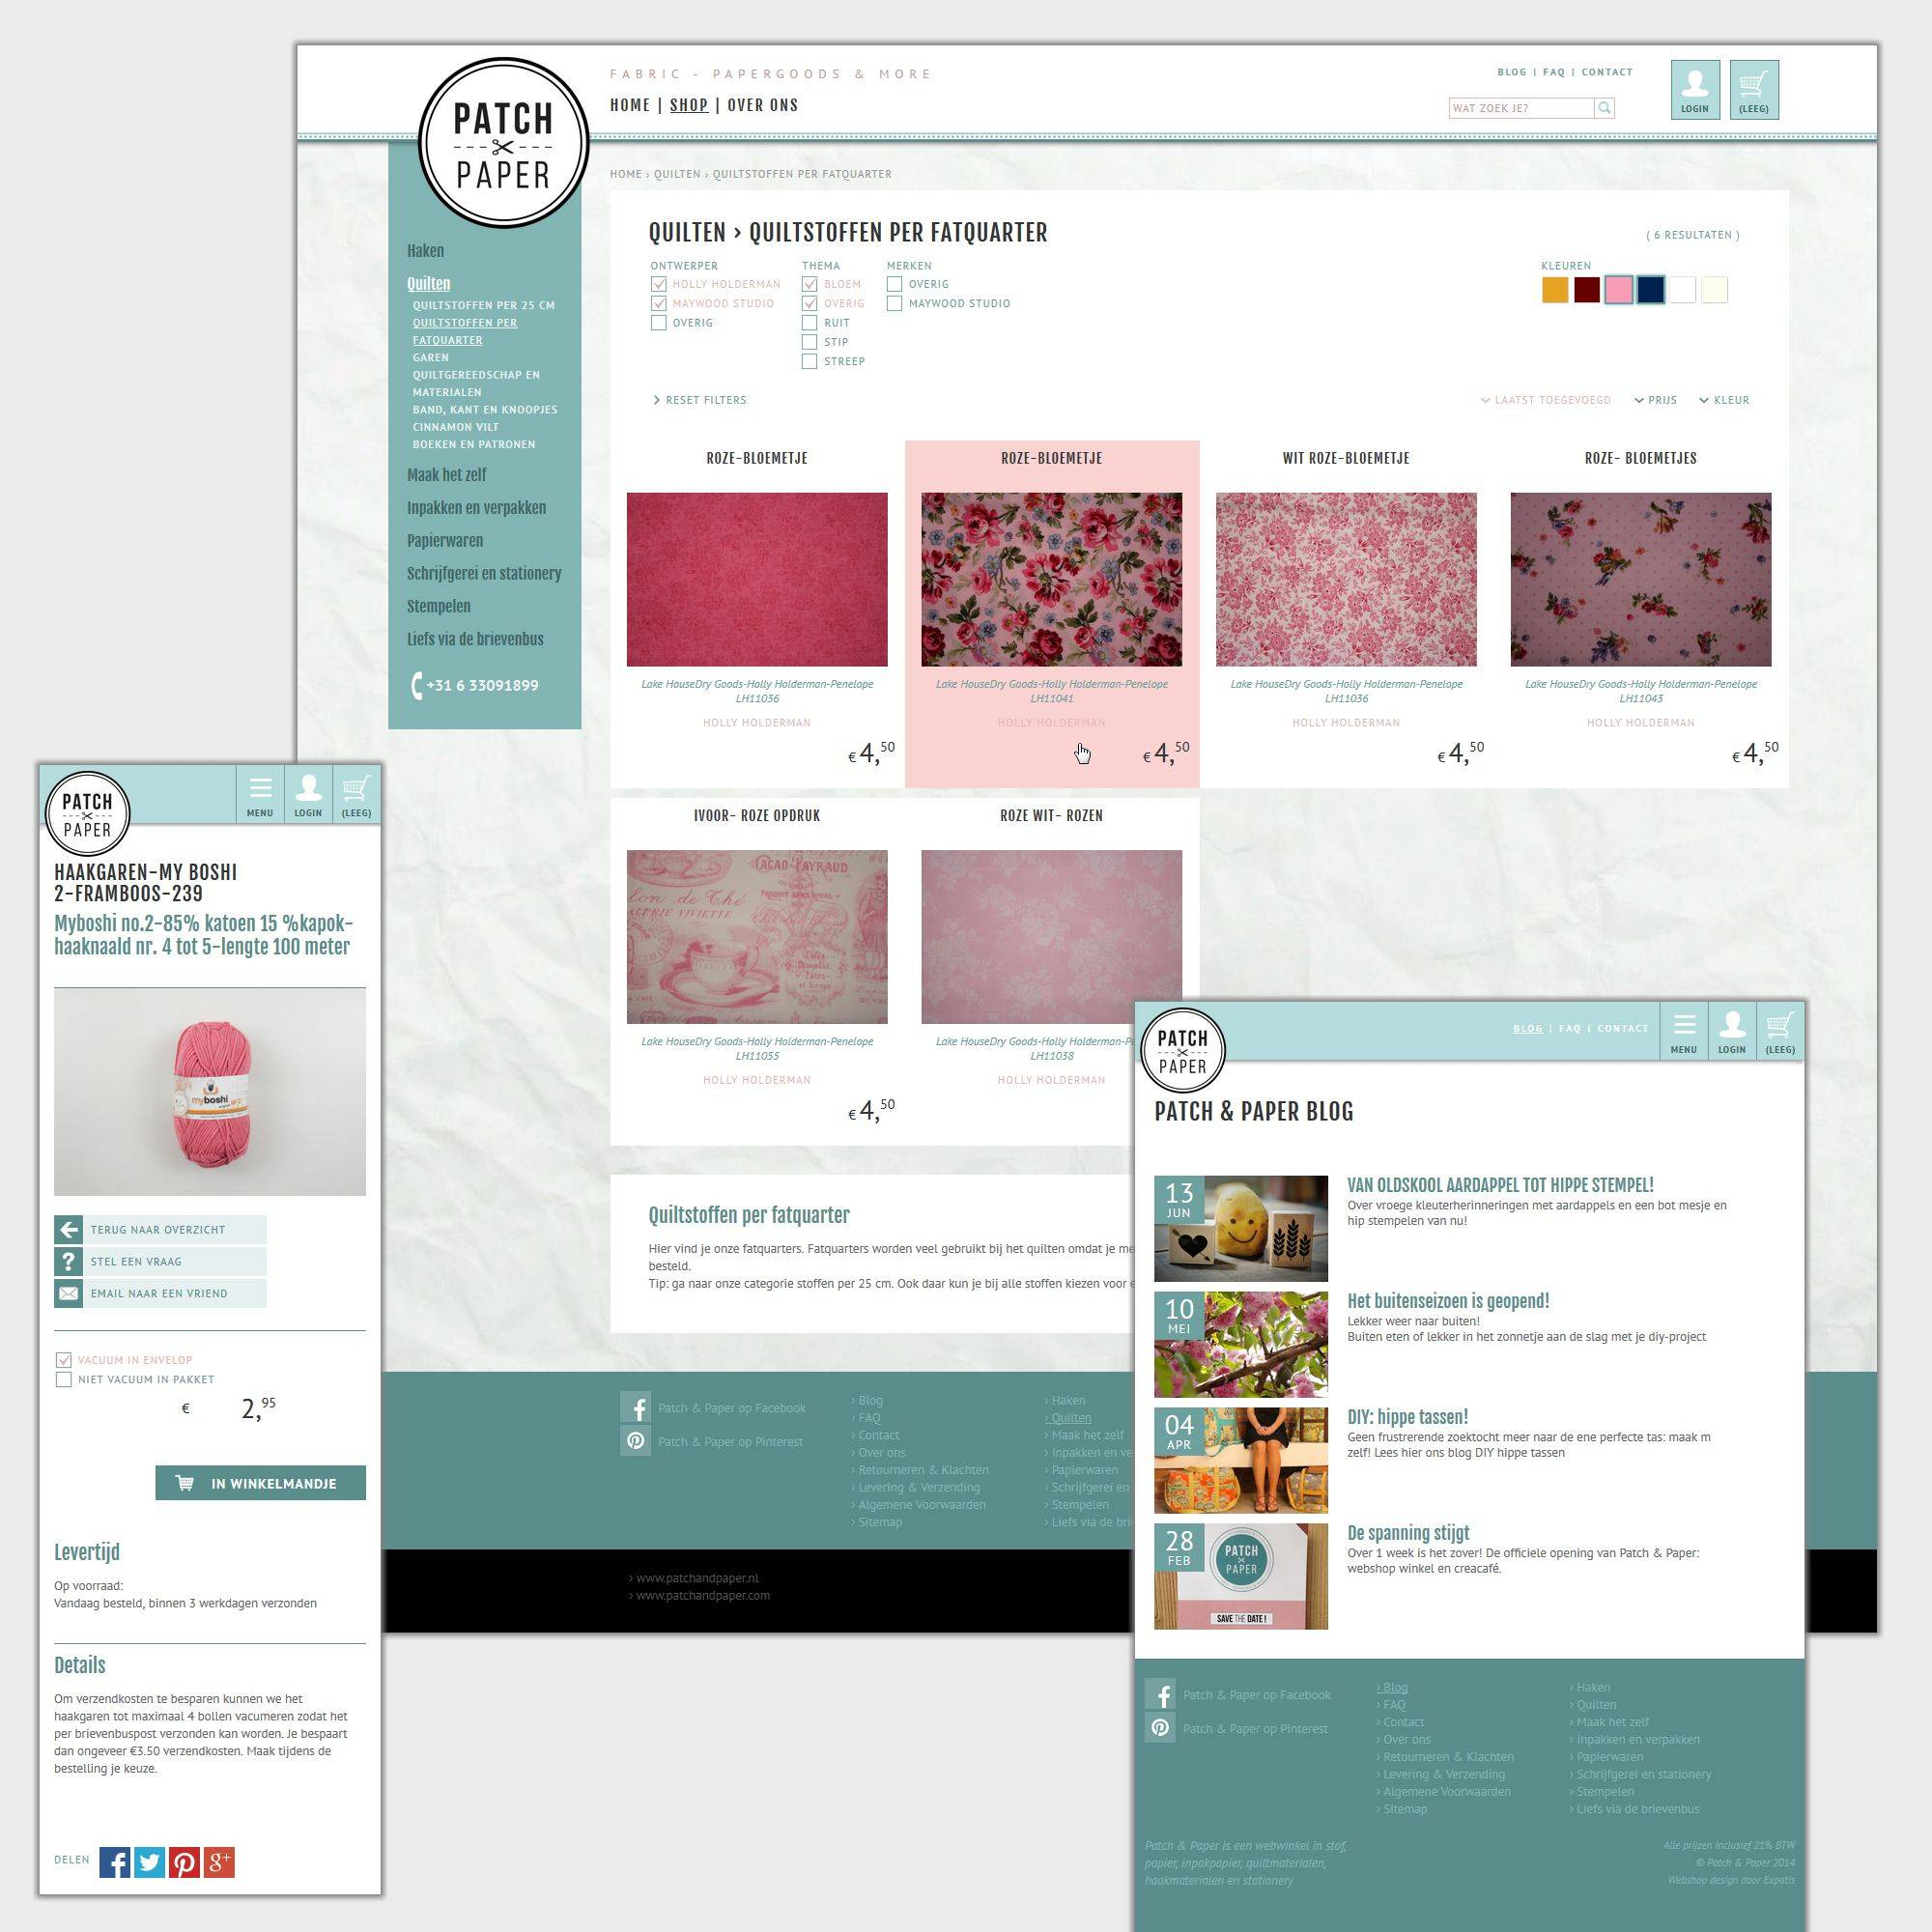 patch-paper-webshop-design